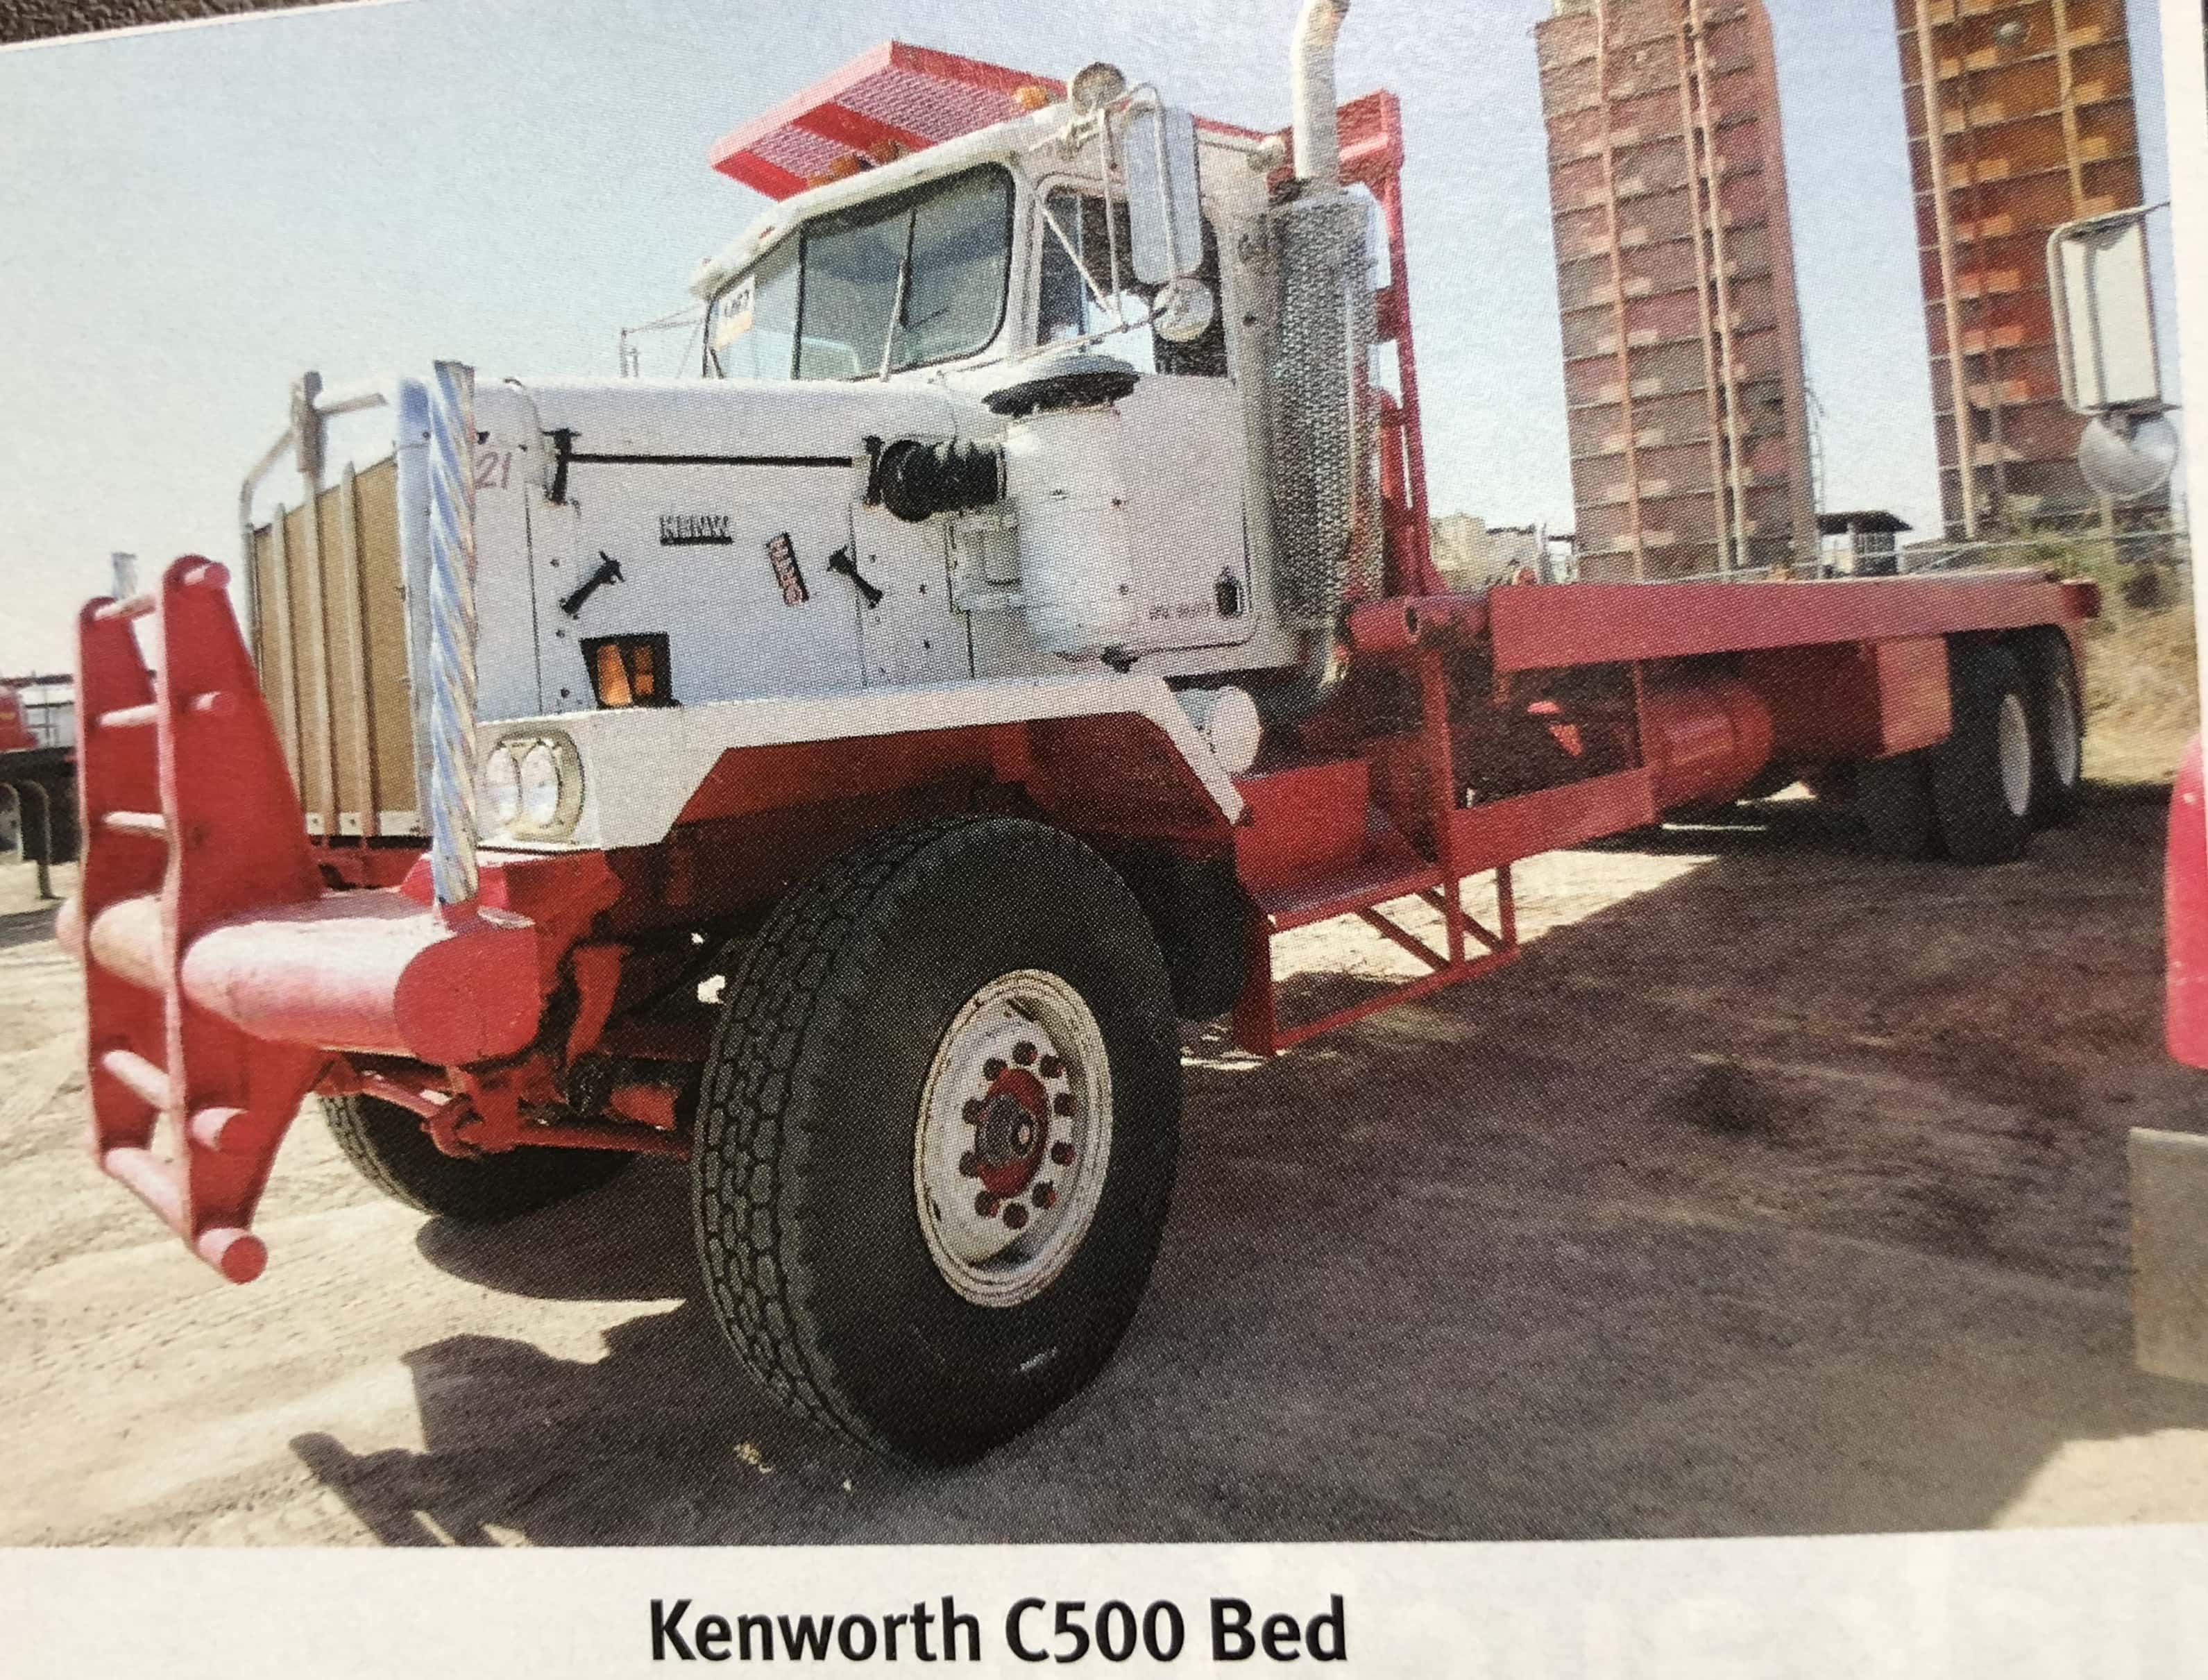 Kenworth C500 Bed